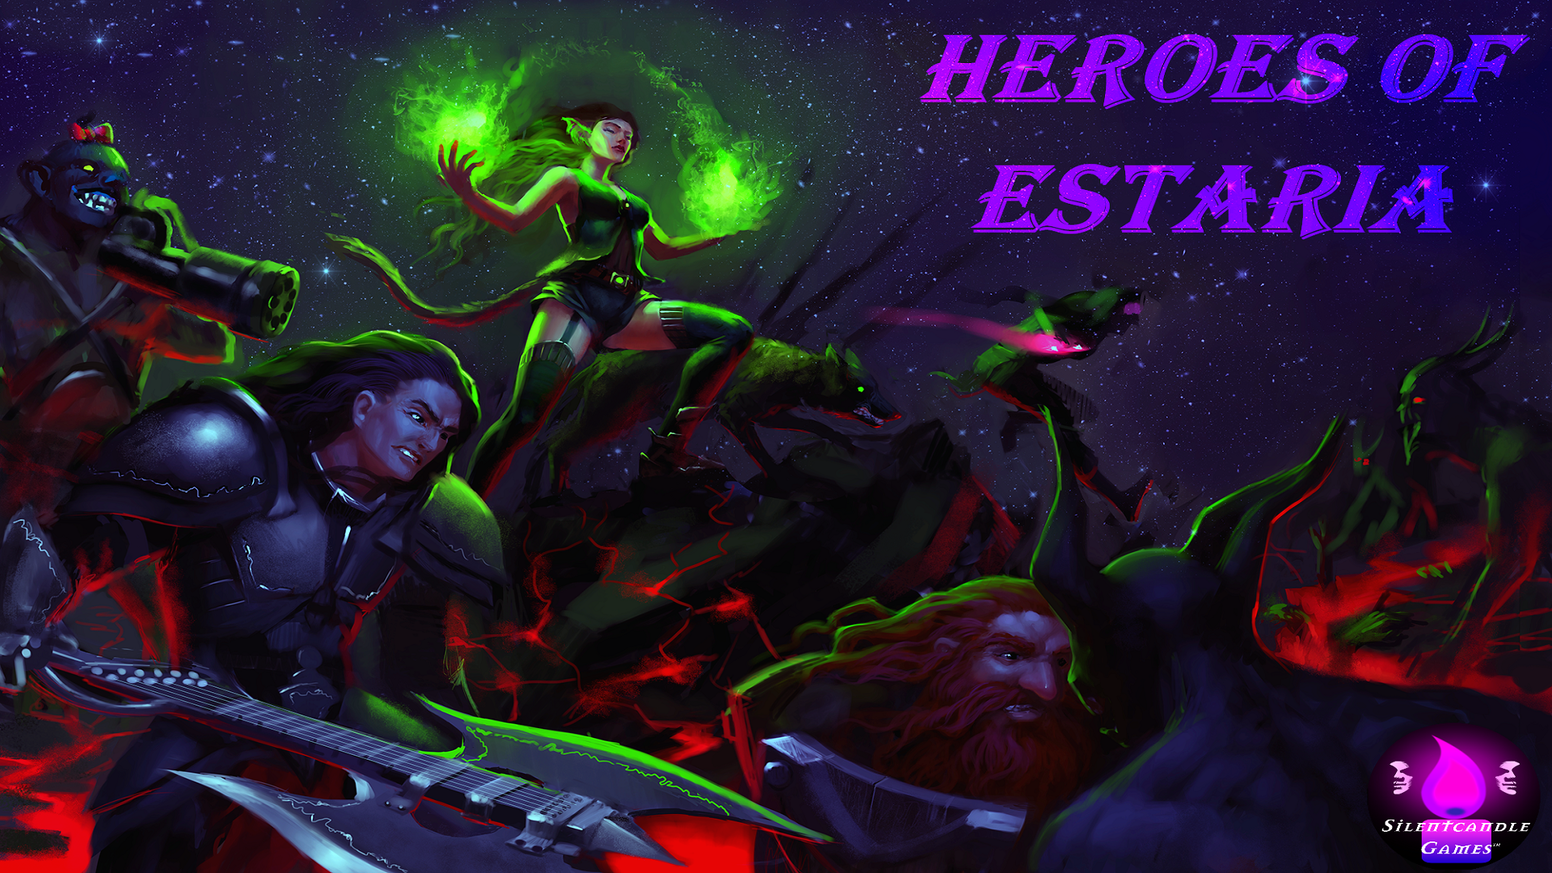 Heroes of Estaria is a Fantasy Roleplaying Game aimed at Tabletop Gamers of just about any skill level.